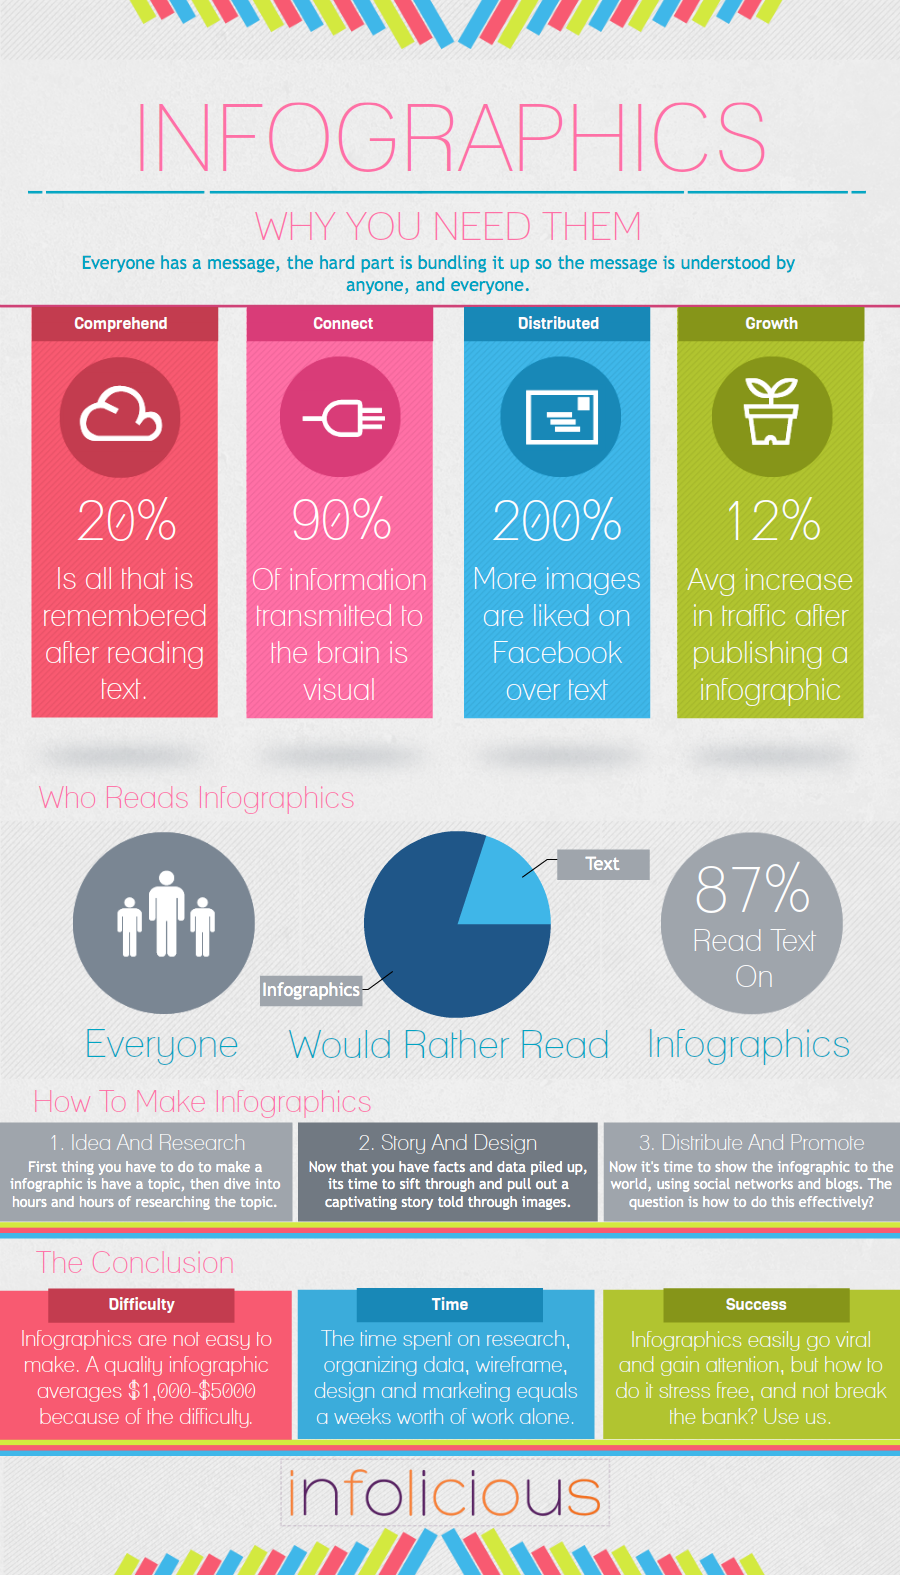 Why-Use-Infographics